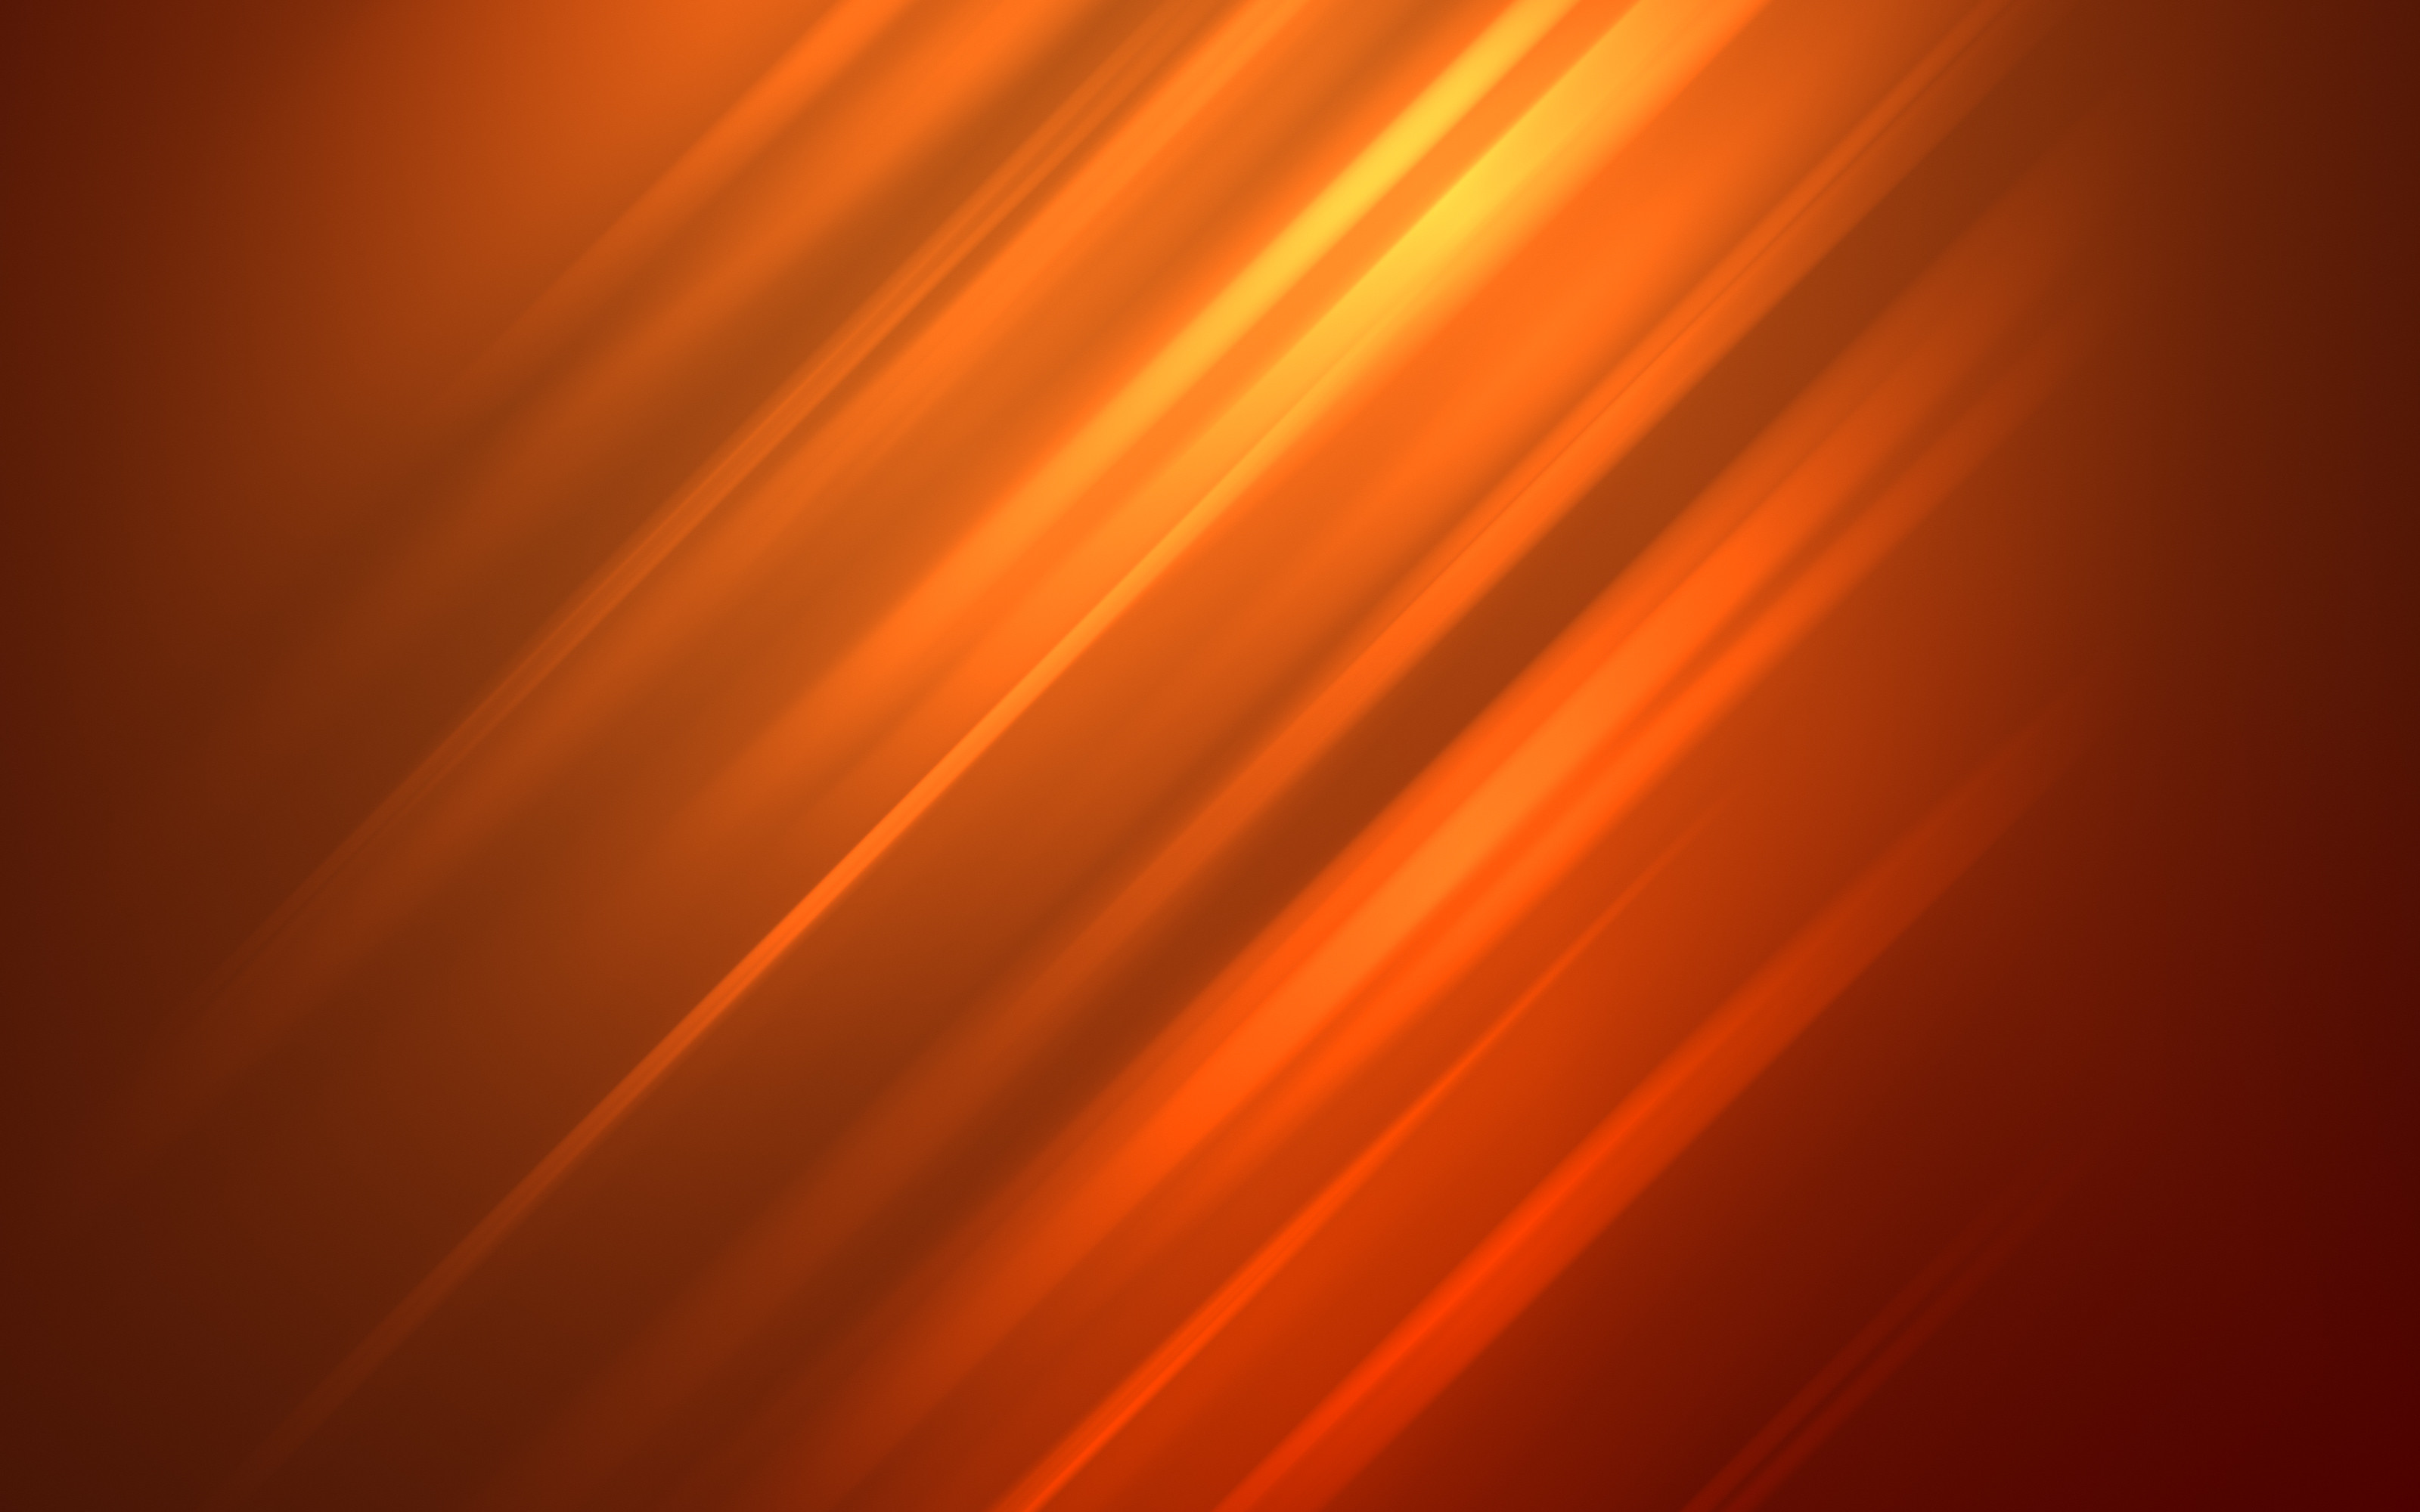 Orange Amp Wallpaper 68 Images